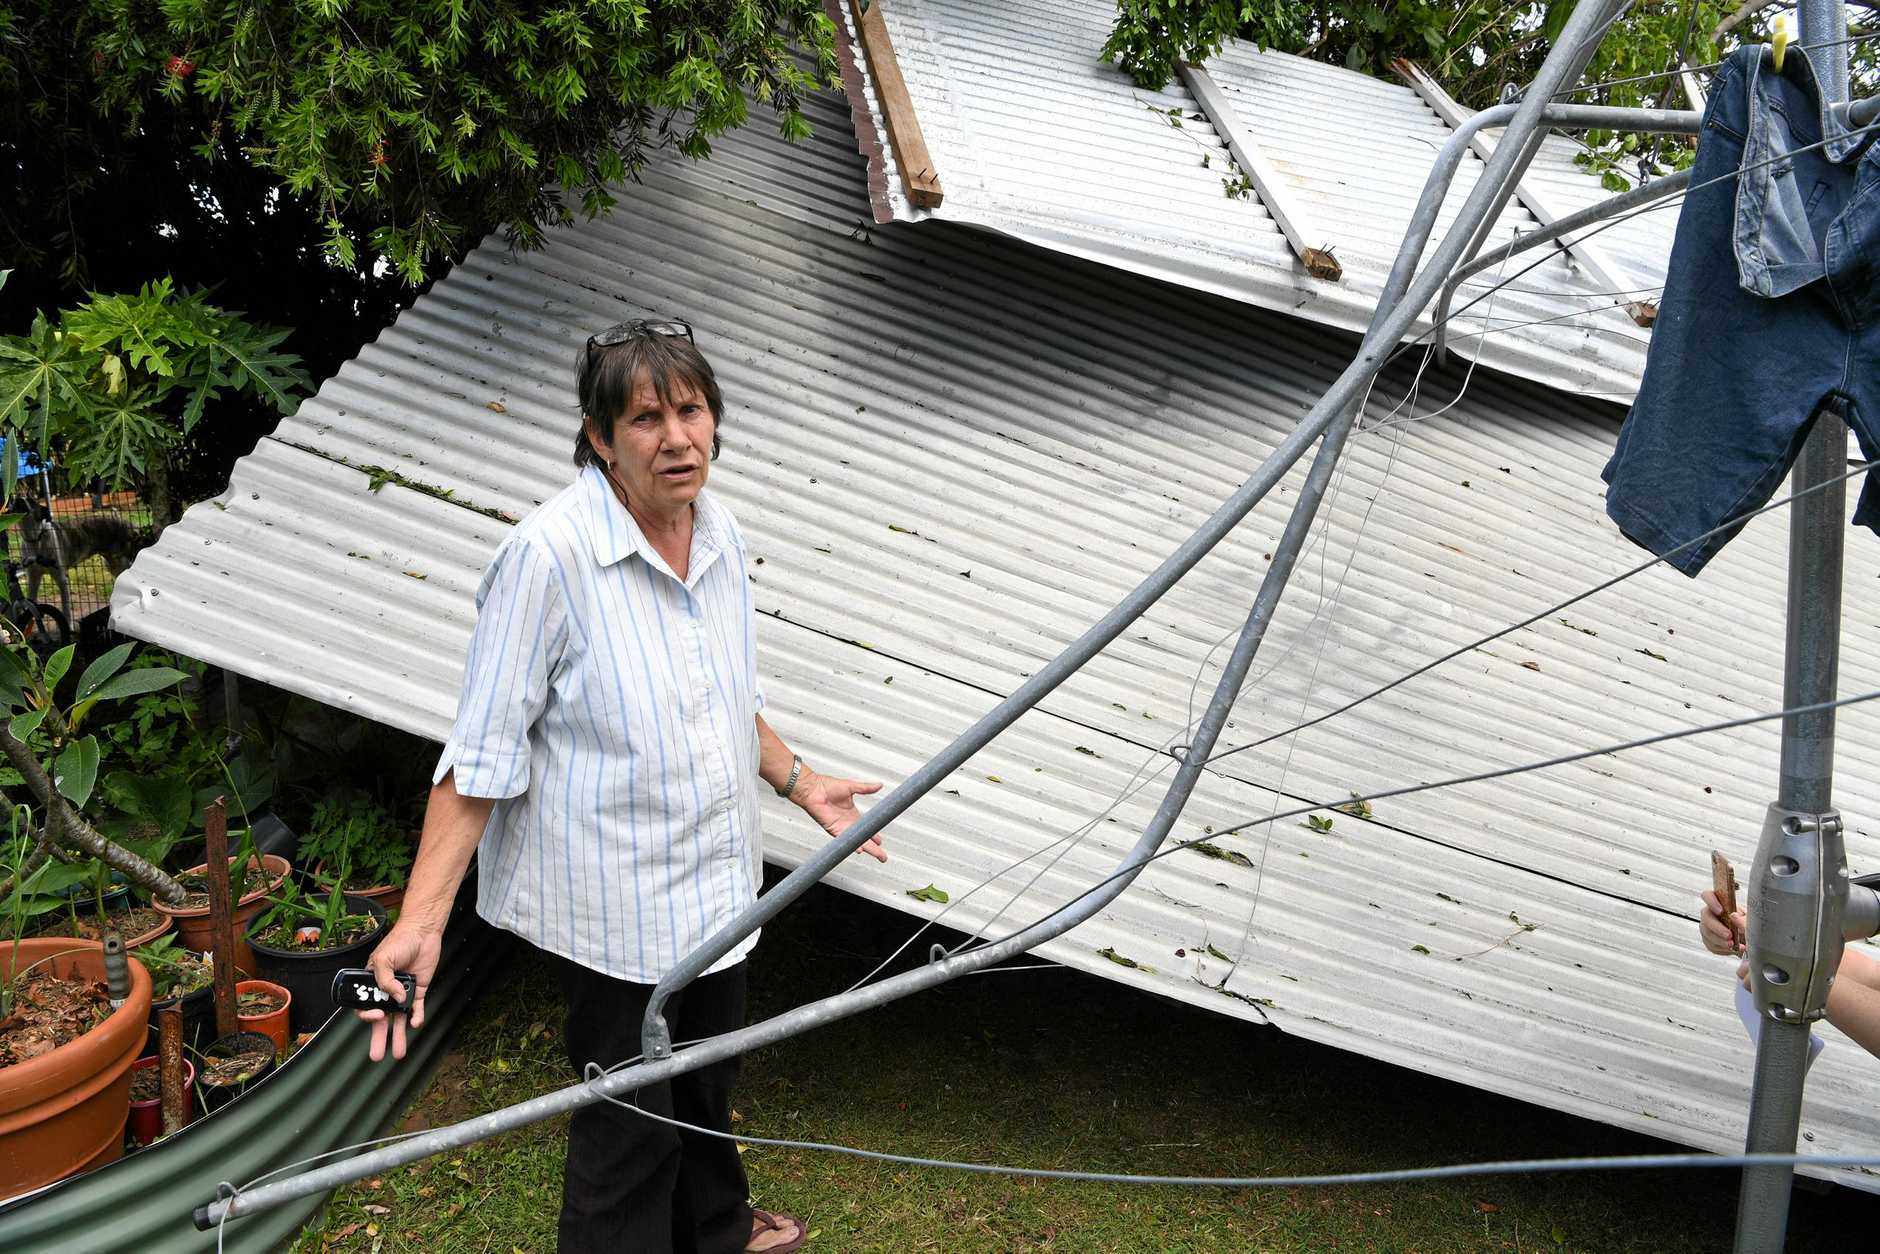 WILD WEATHER: Marilyn Smith discovered a neighbour's shed in her backyard after a storm in November last year.